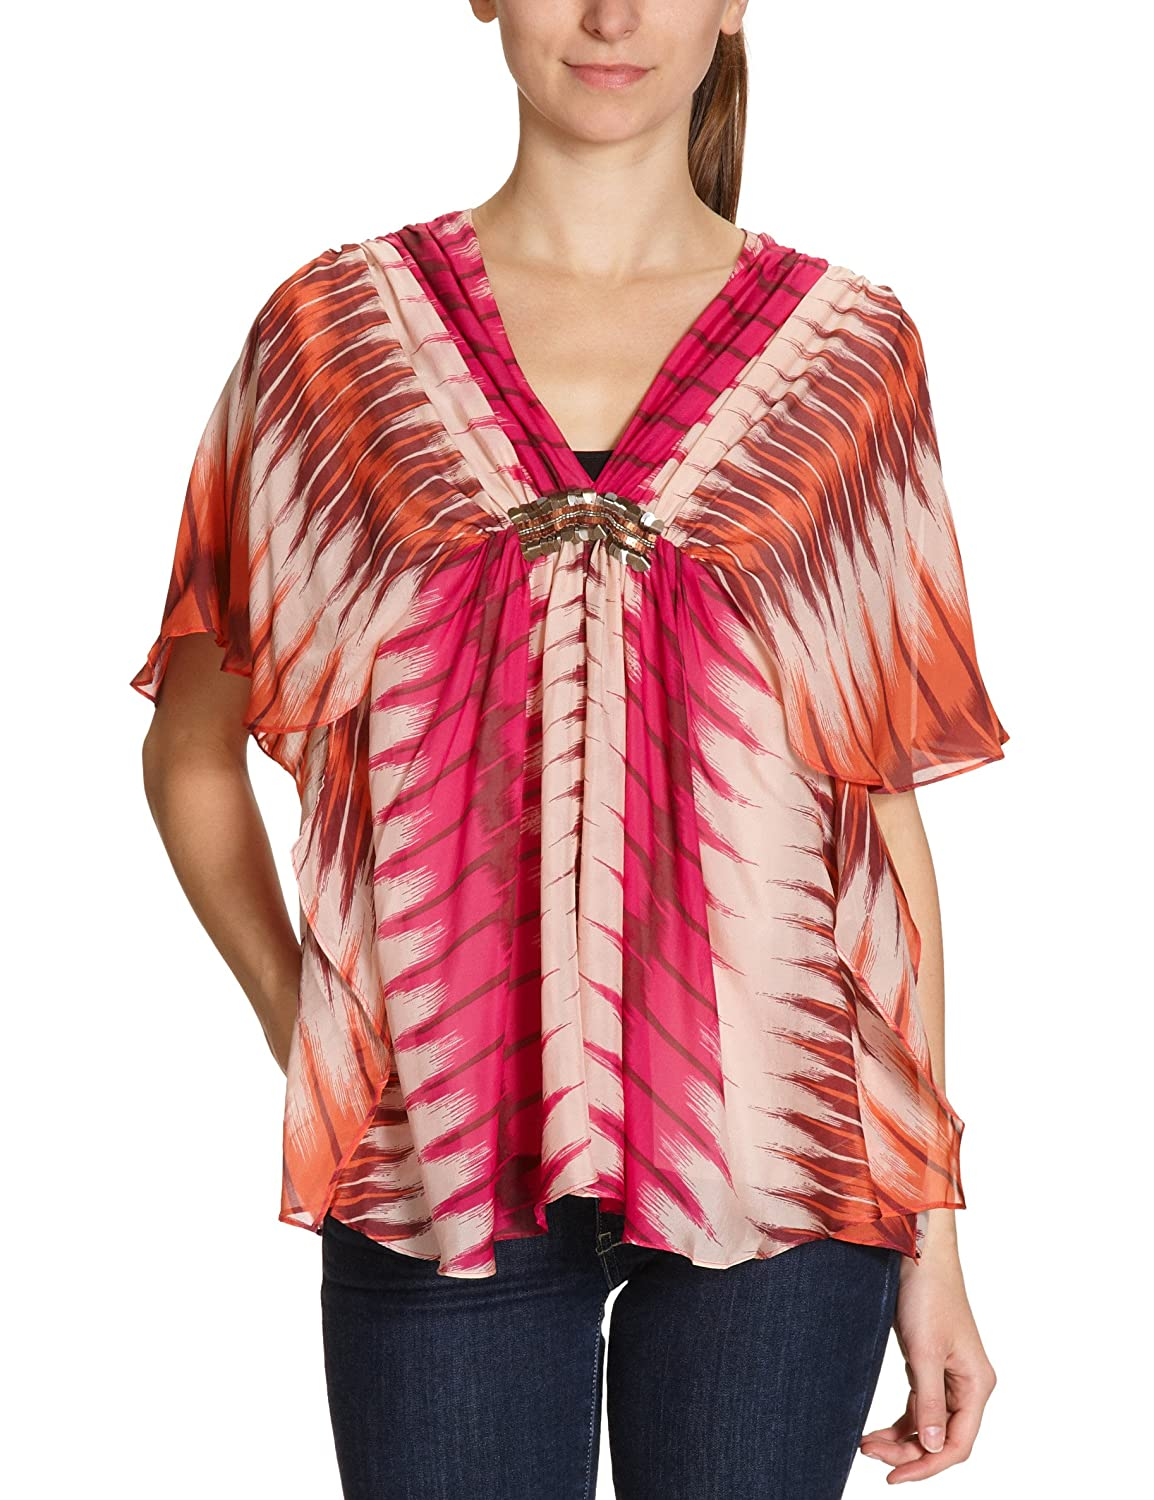 Antik Batik Damen Top, All over Druck FLAME1TEE